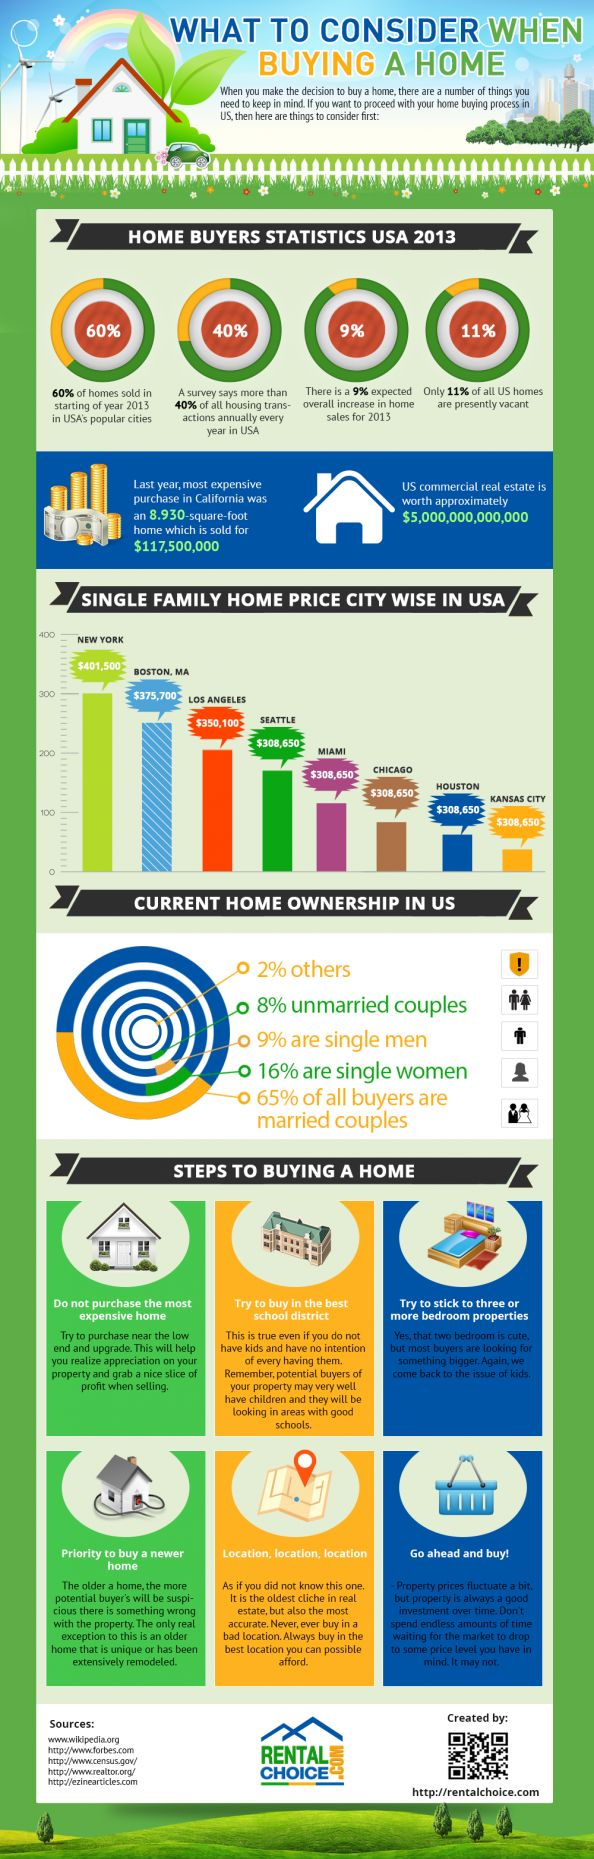 Keep these things in mind when you're ready to start home shopping. #realestate #homebuyer